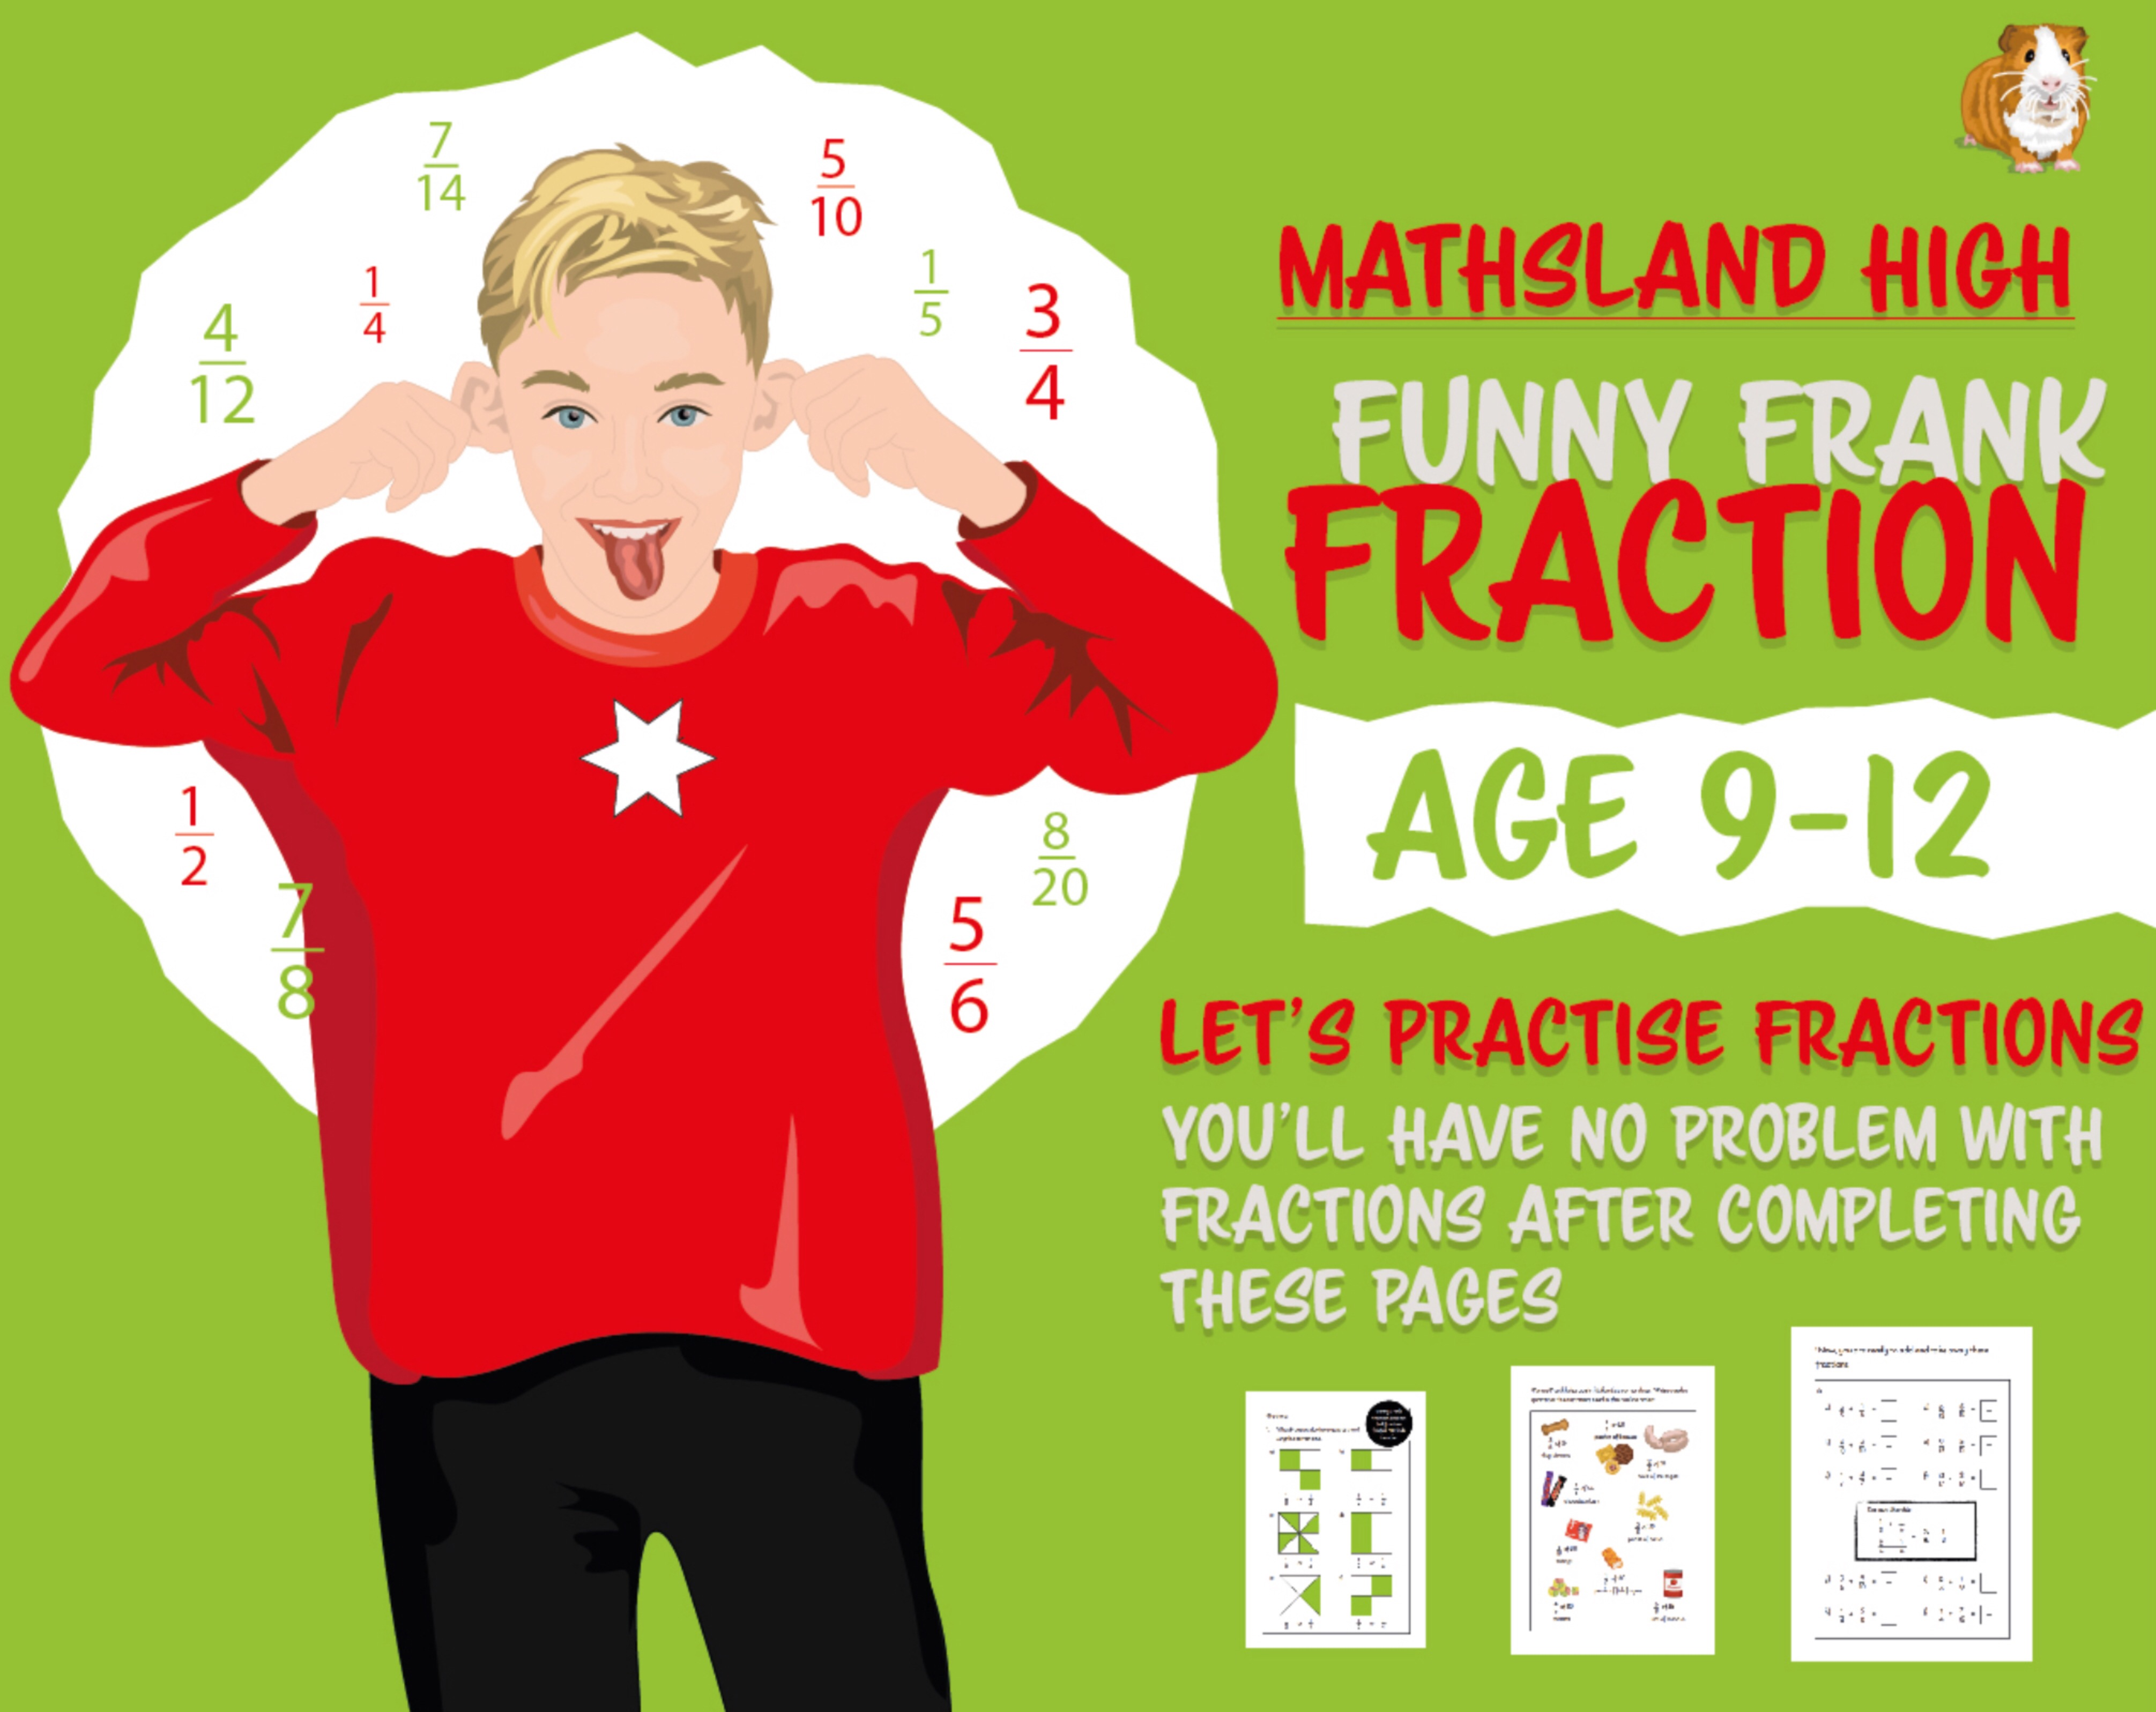 Fraction Practice Questions With Answers (Age 9-12)